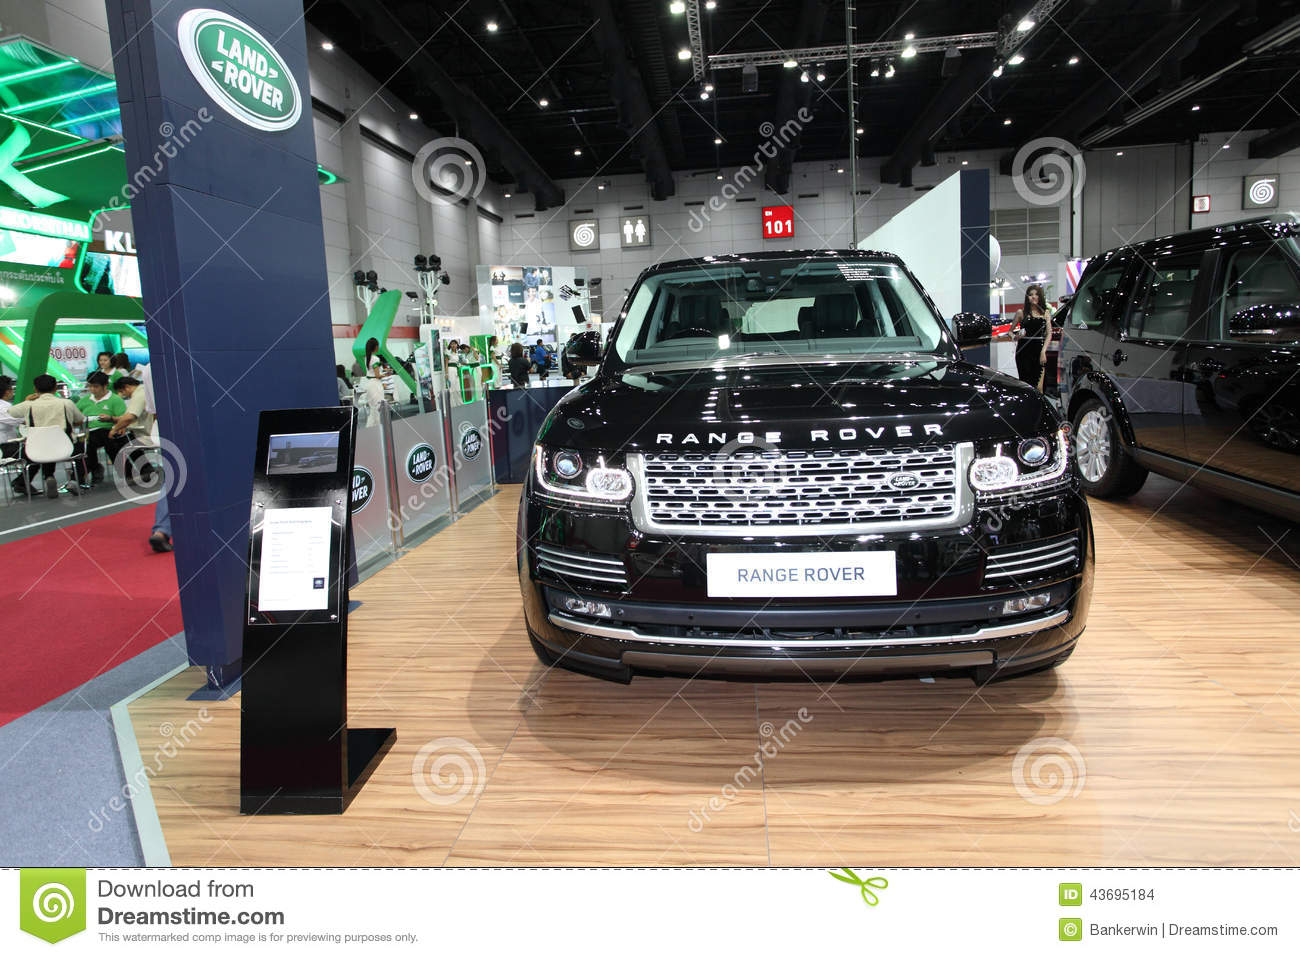 BANGKOK August Range Rover Car On Display At Big Motor Sal - Car show displays for sale